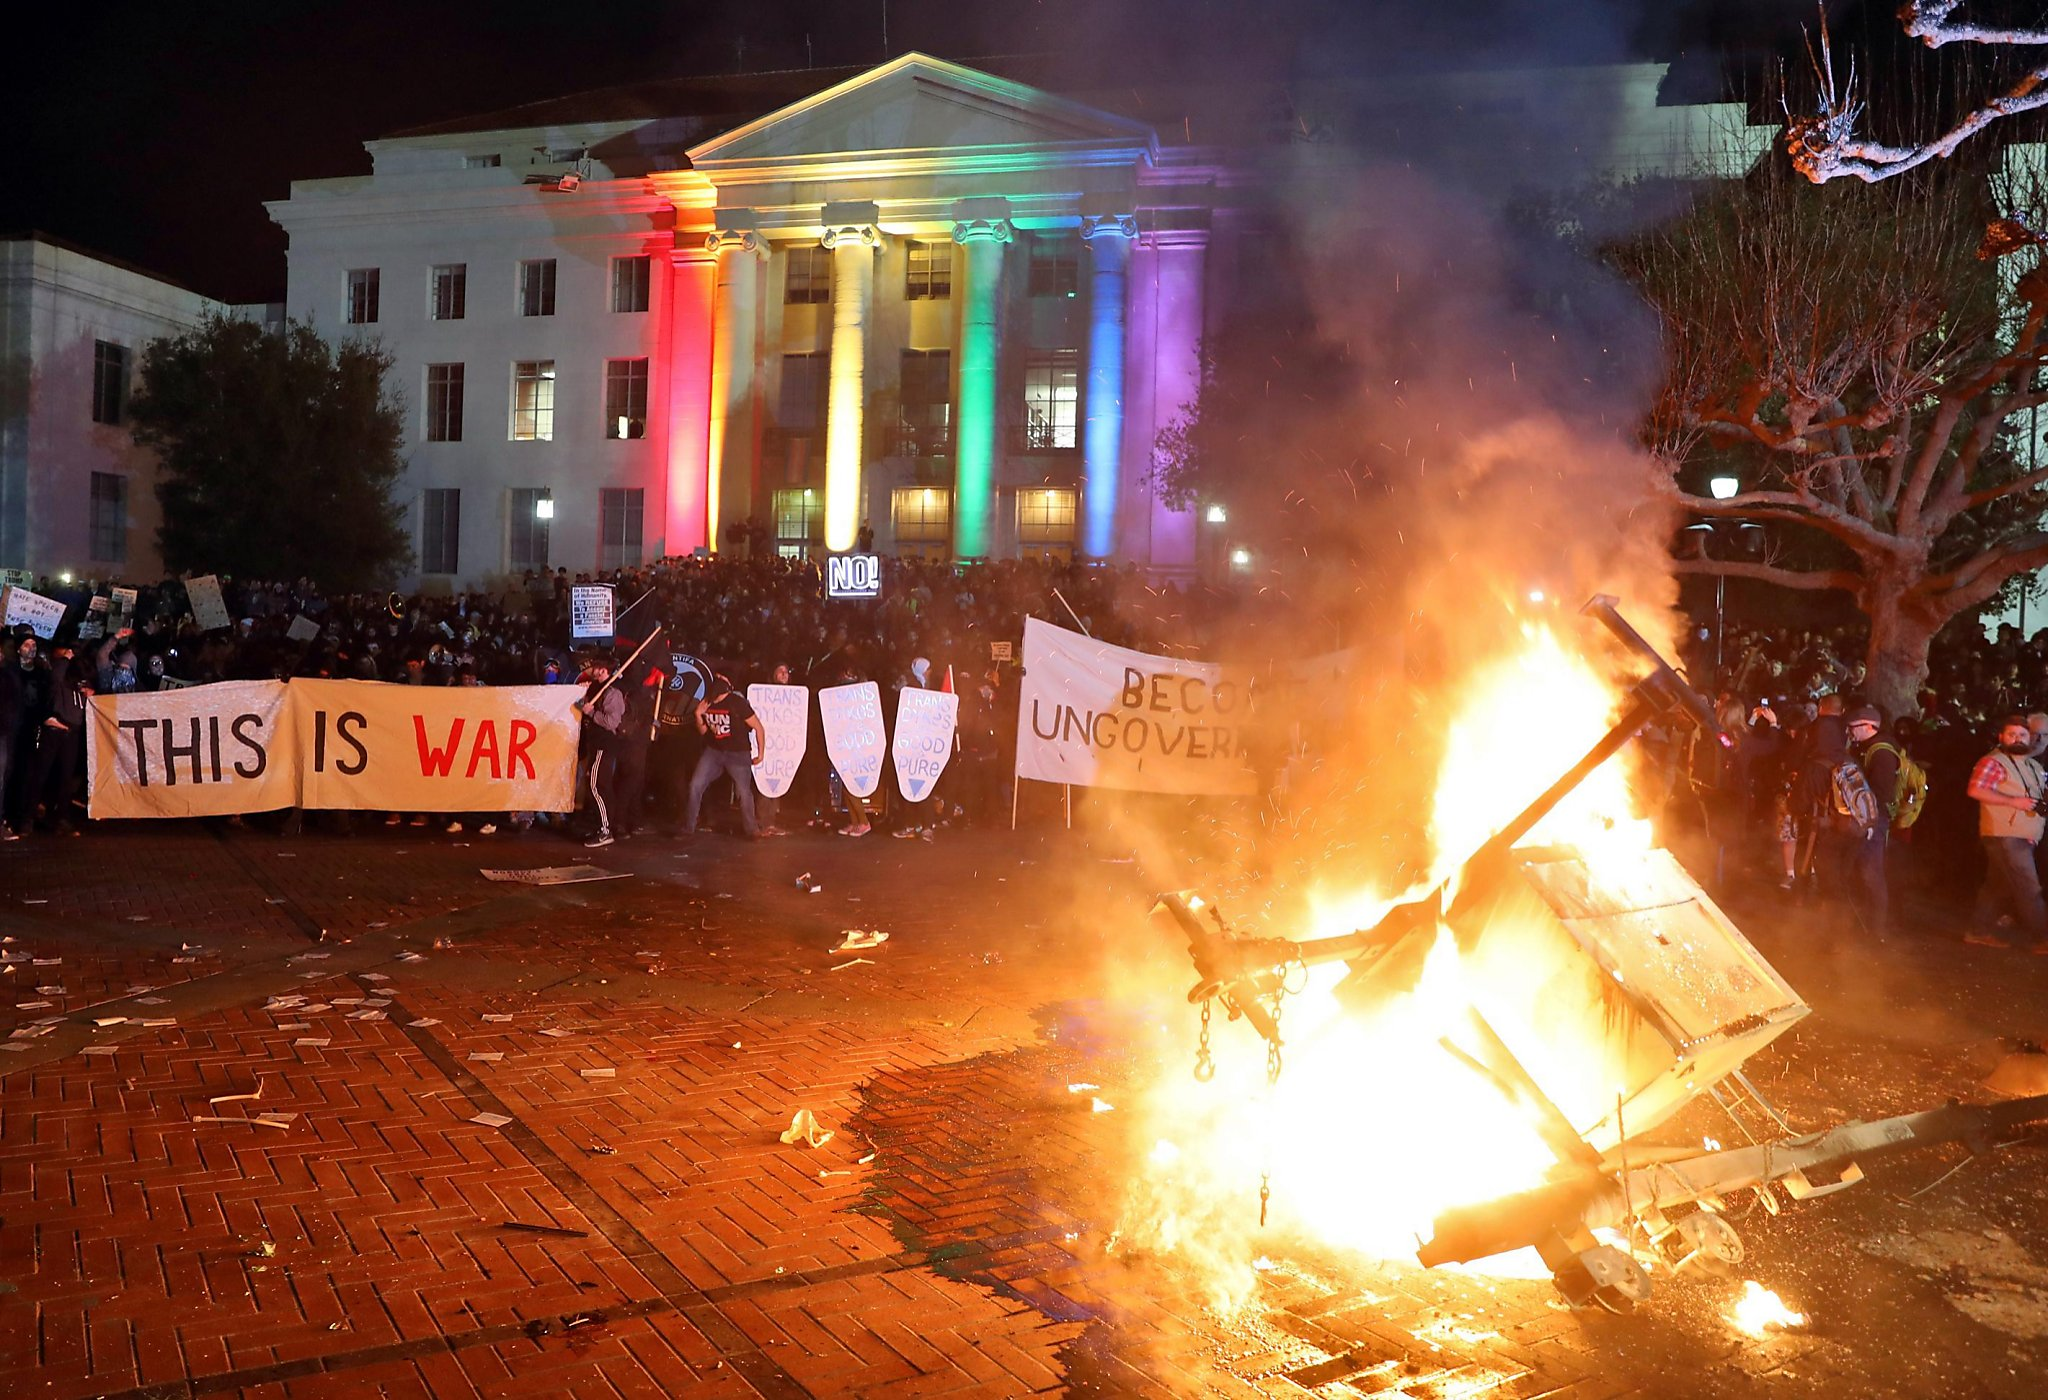 at berkeley yiannopoulos protest 100 000 in damage 1 arrest sfgate